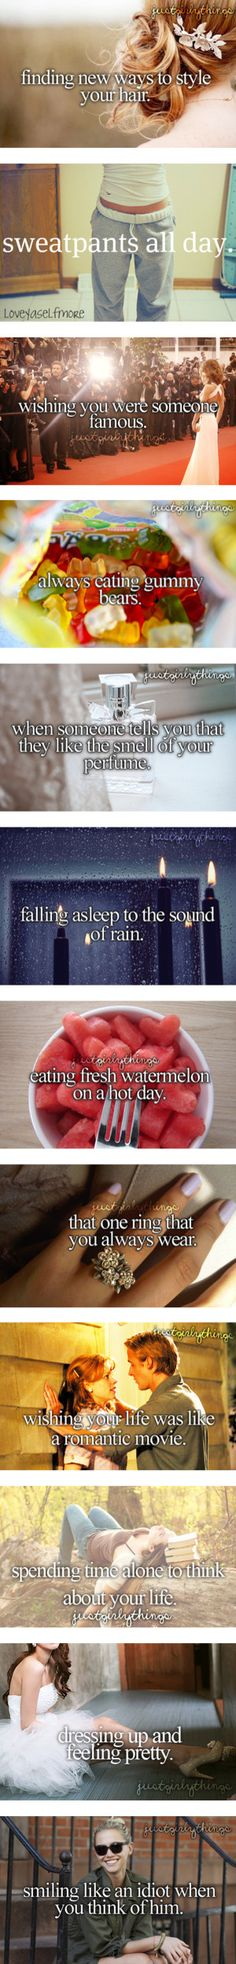 """Just the Girly Things"" by smileforflowers ❤ liked on Polyvore"